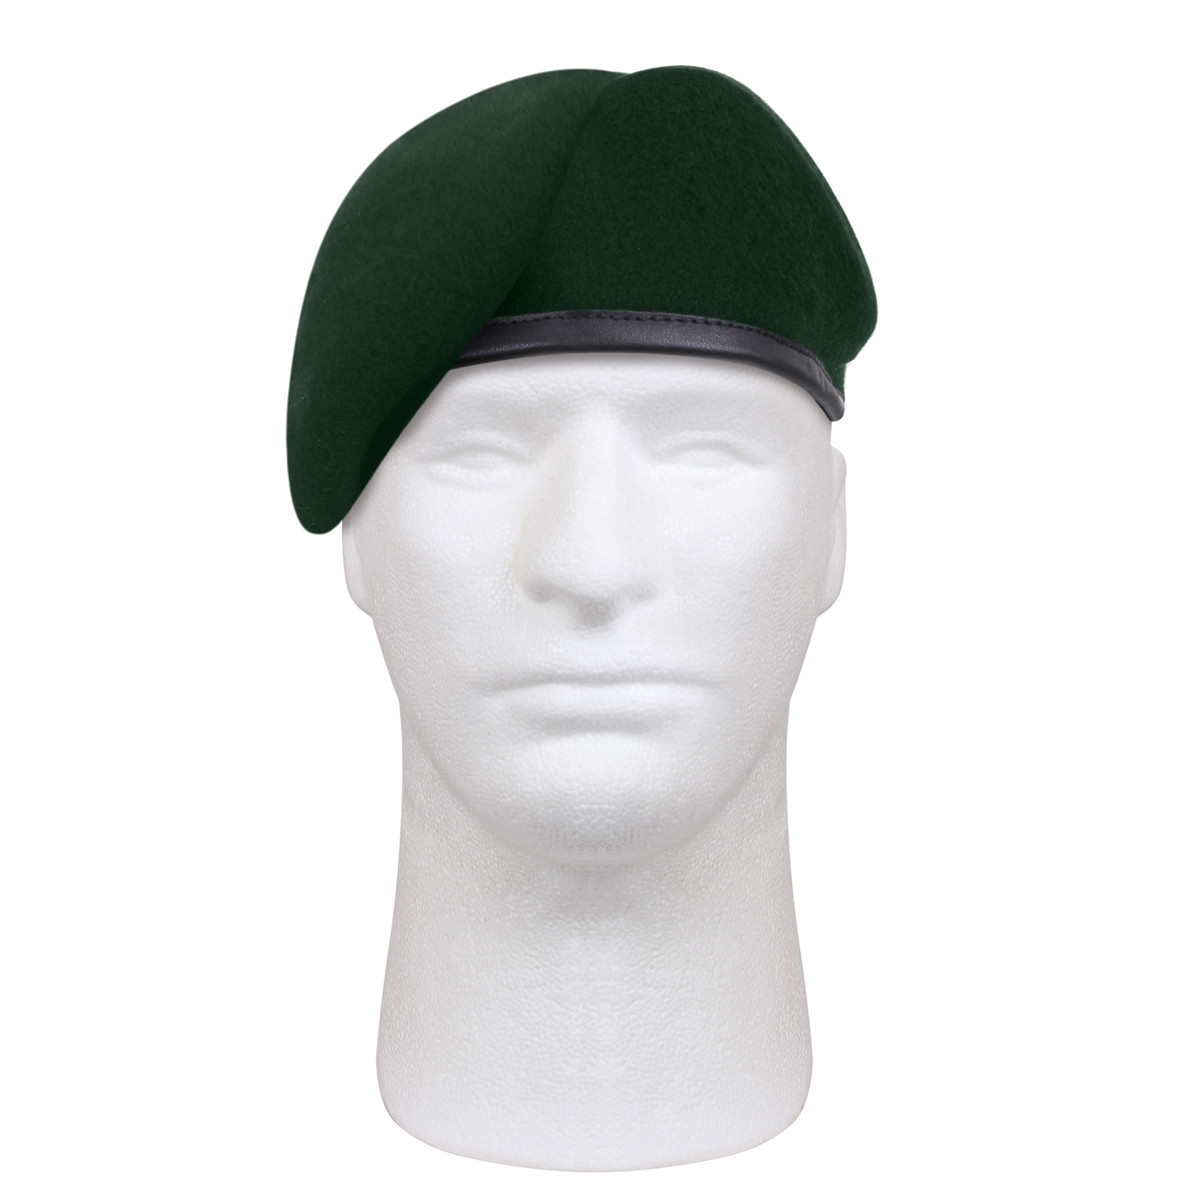 3b285055d9ffd Shop Inspection Ready Green Berets - Fatigues Army Navy Gear